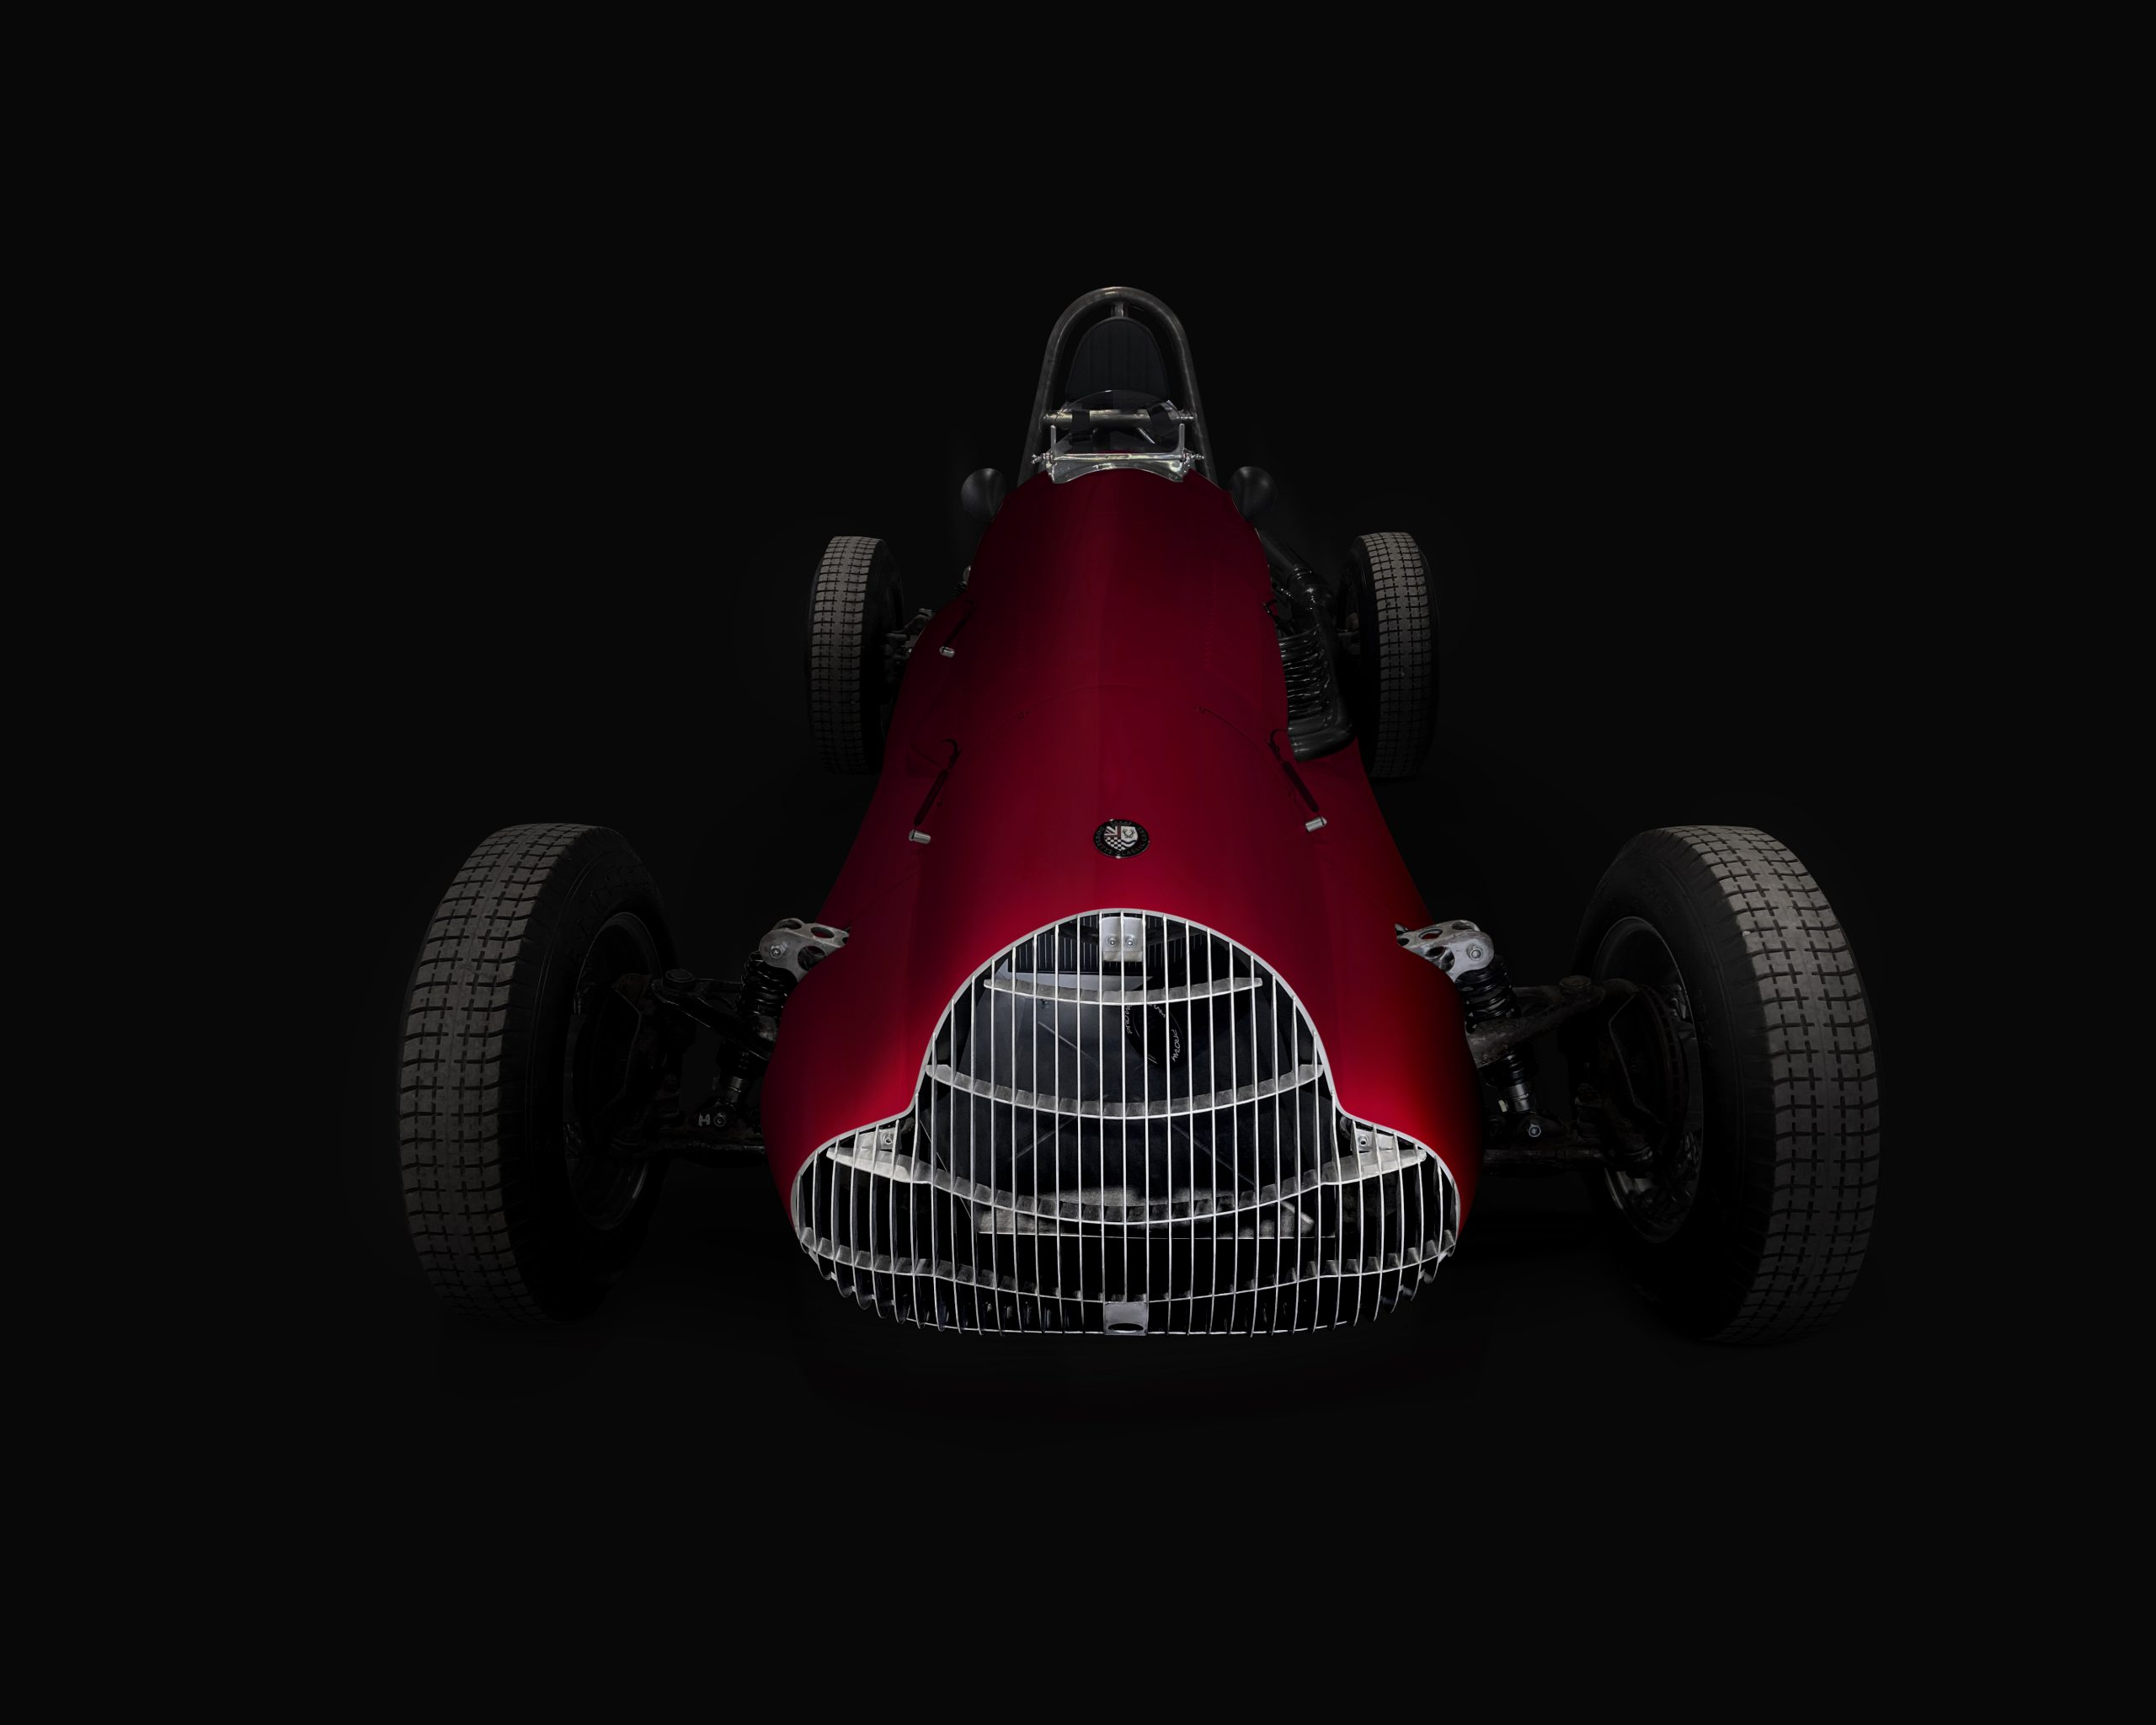 Feel like Fangio by racing this Tipo 184 kit car